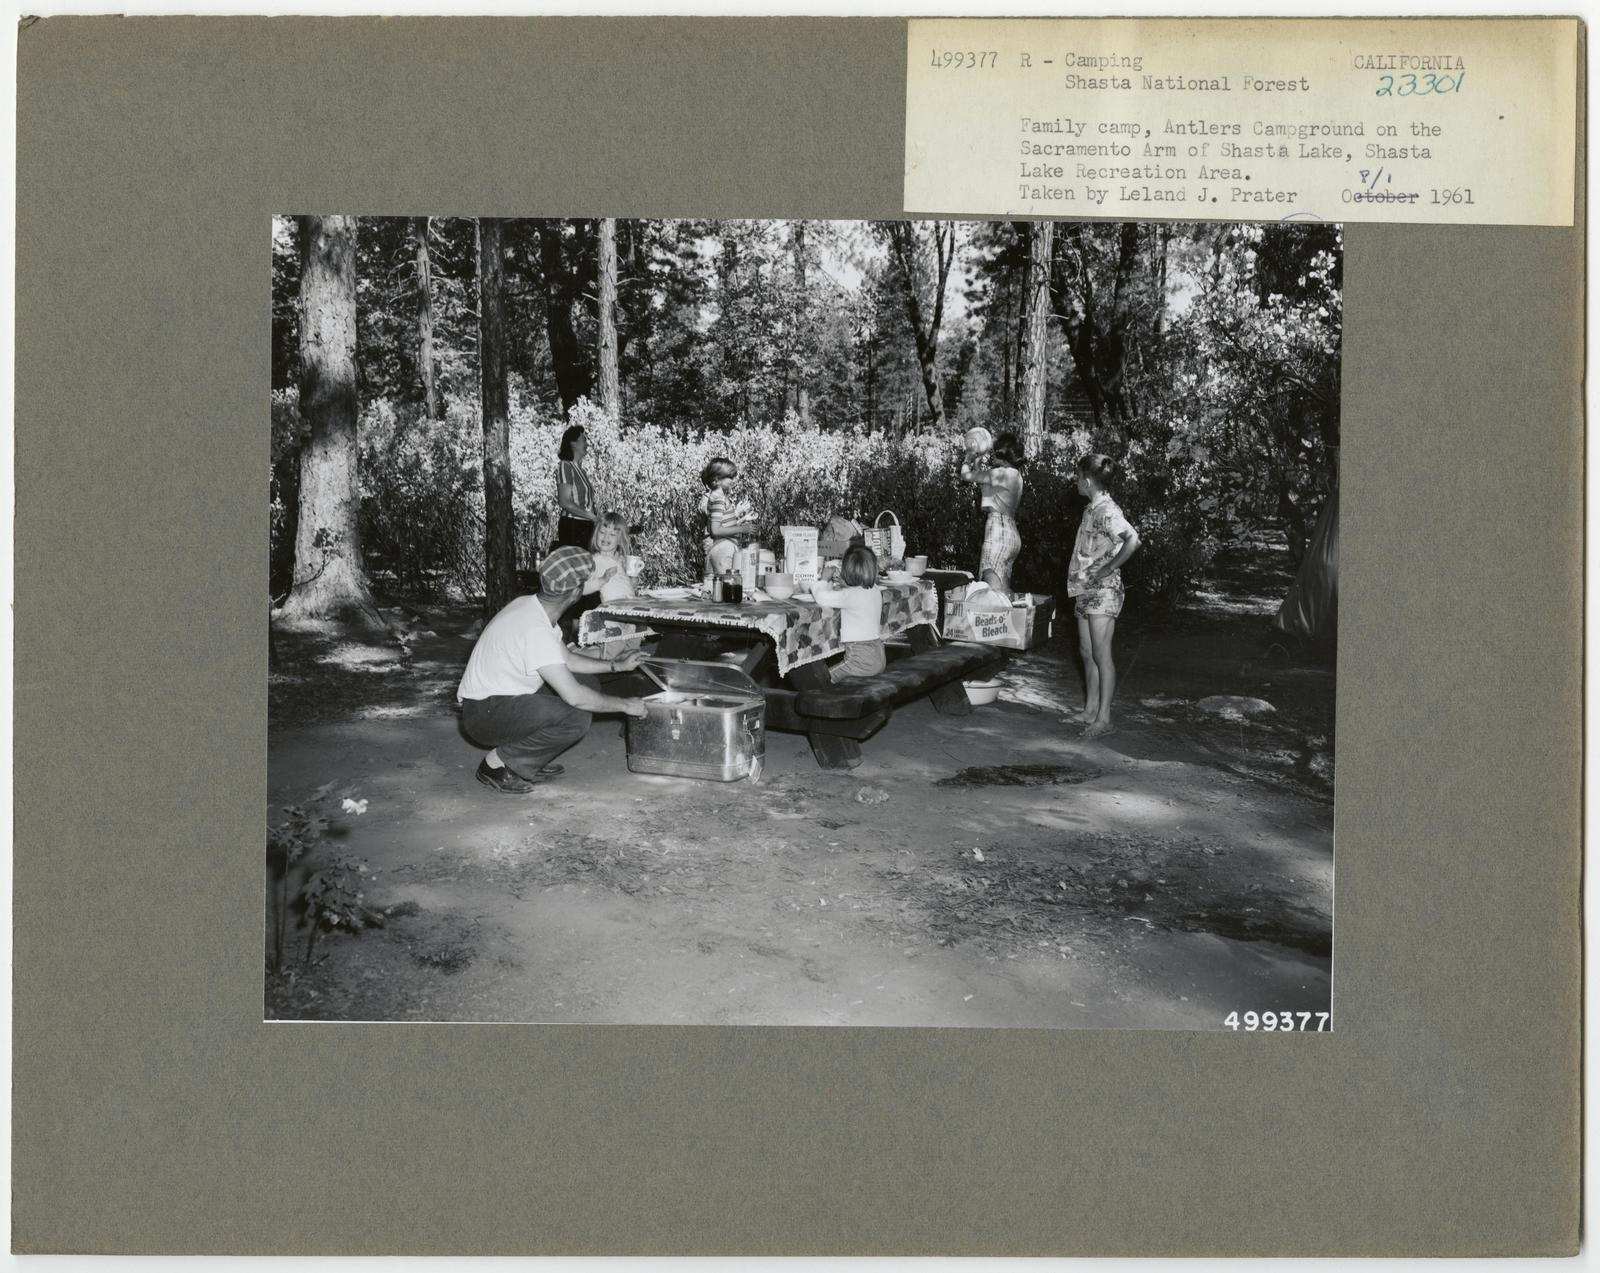 Camping and Picnicking - California